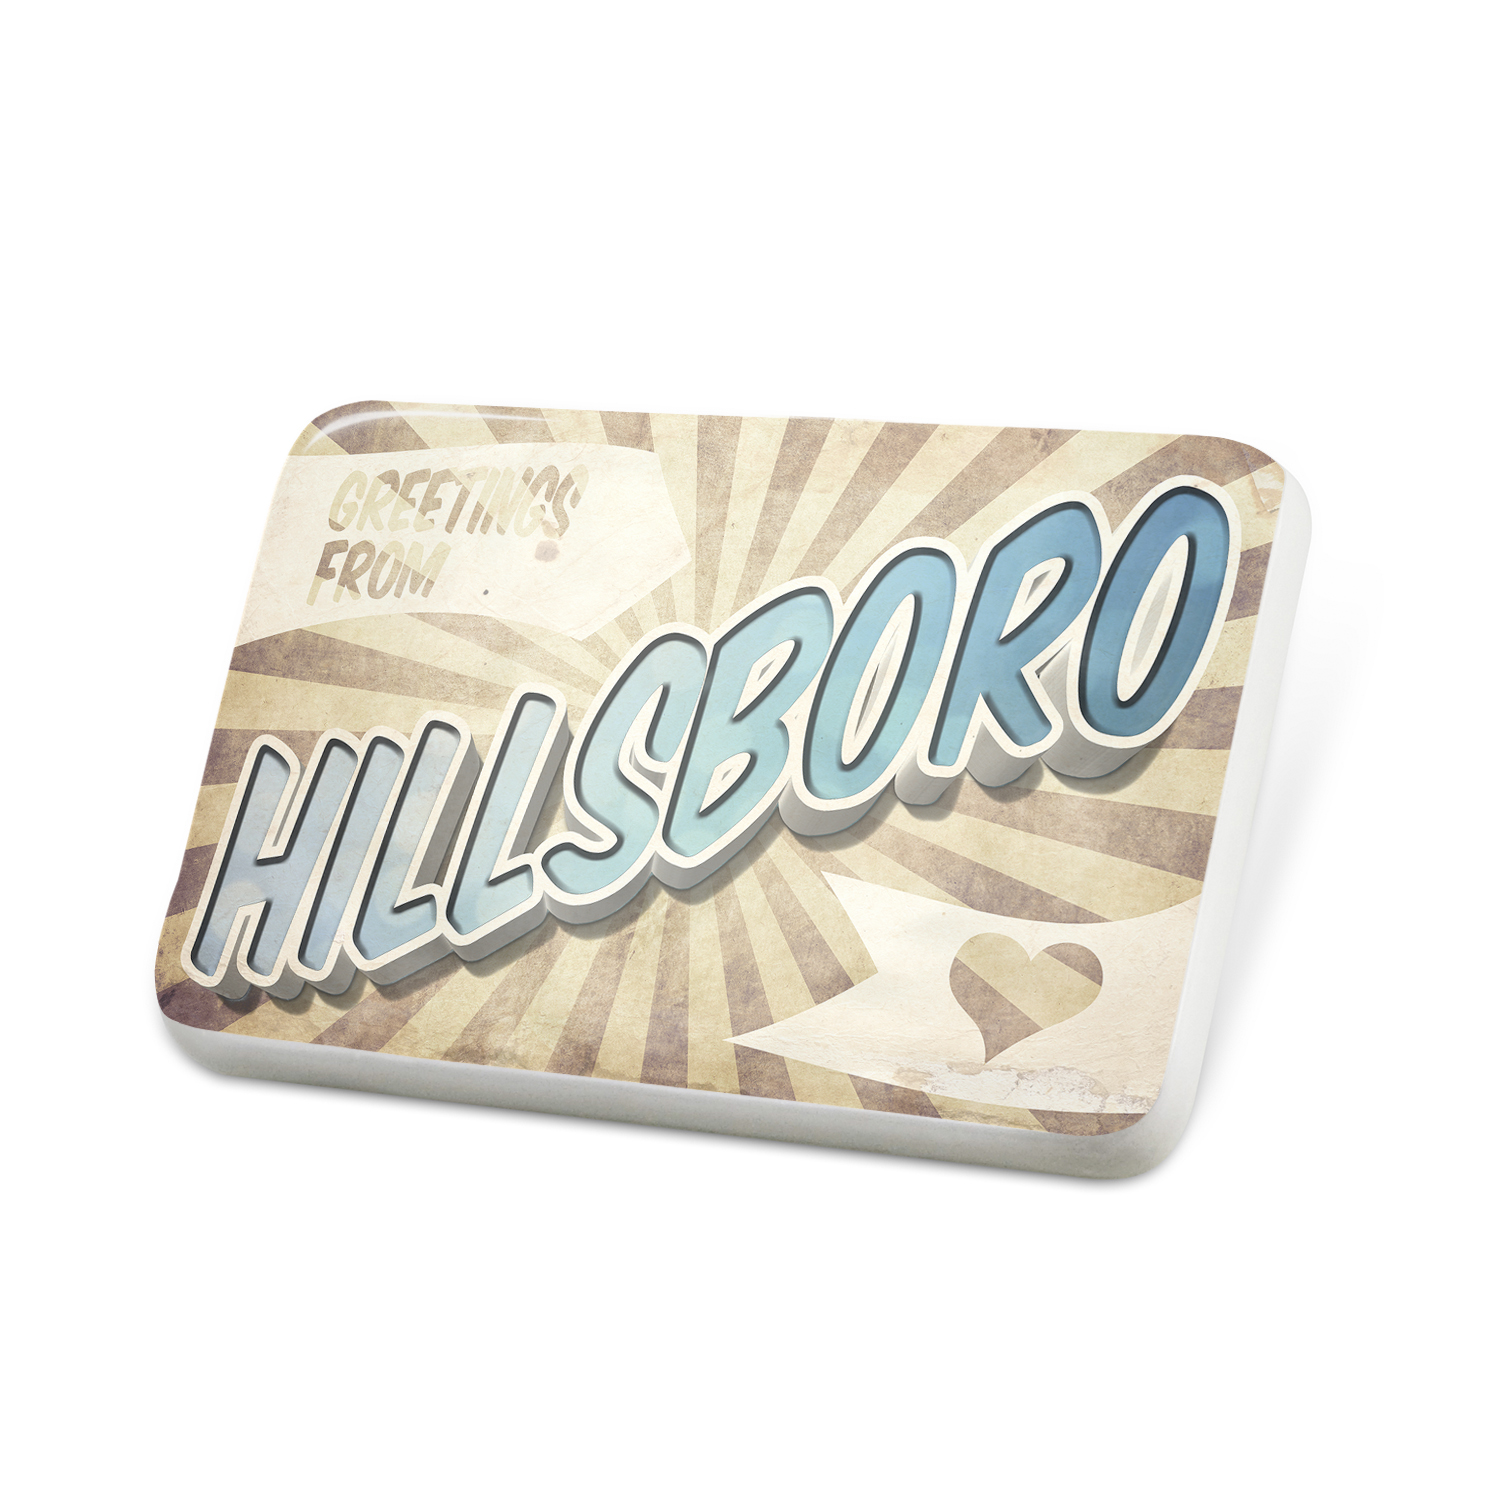 Porcelein Pin Greetings from Hillsboro, Vintage Postcard Lapel Badge – NEONBLOND